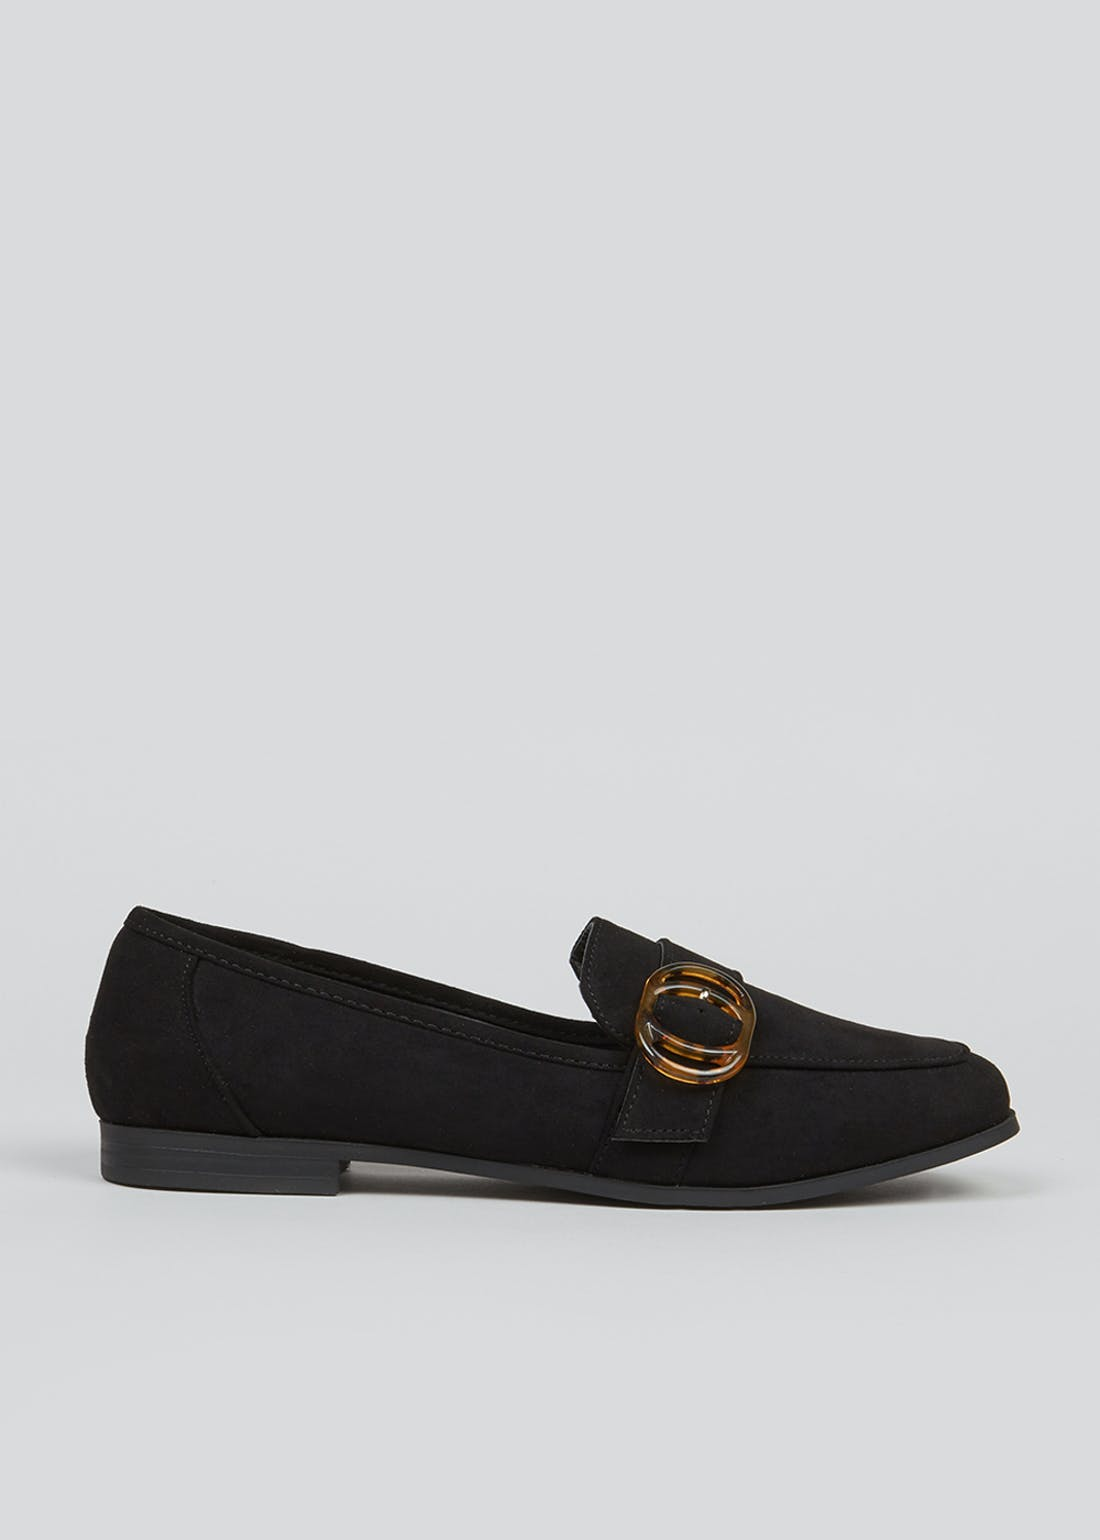 Black Suedette Buckle Loafers